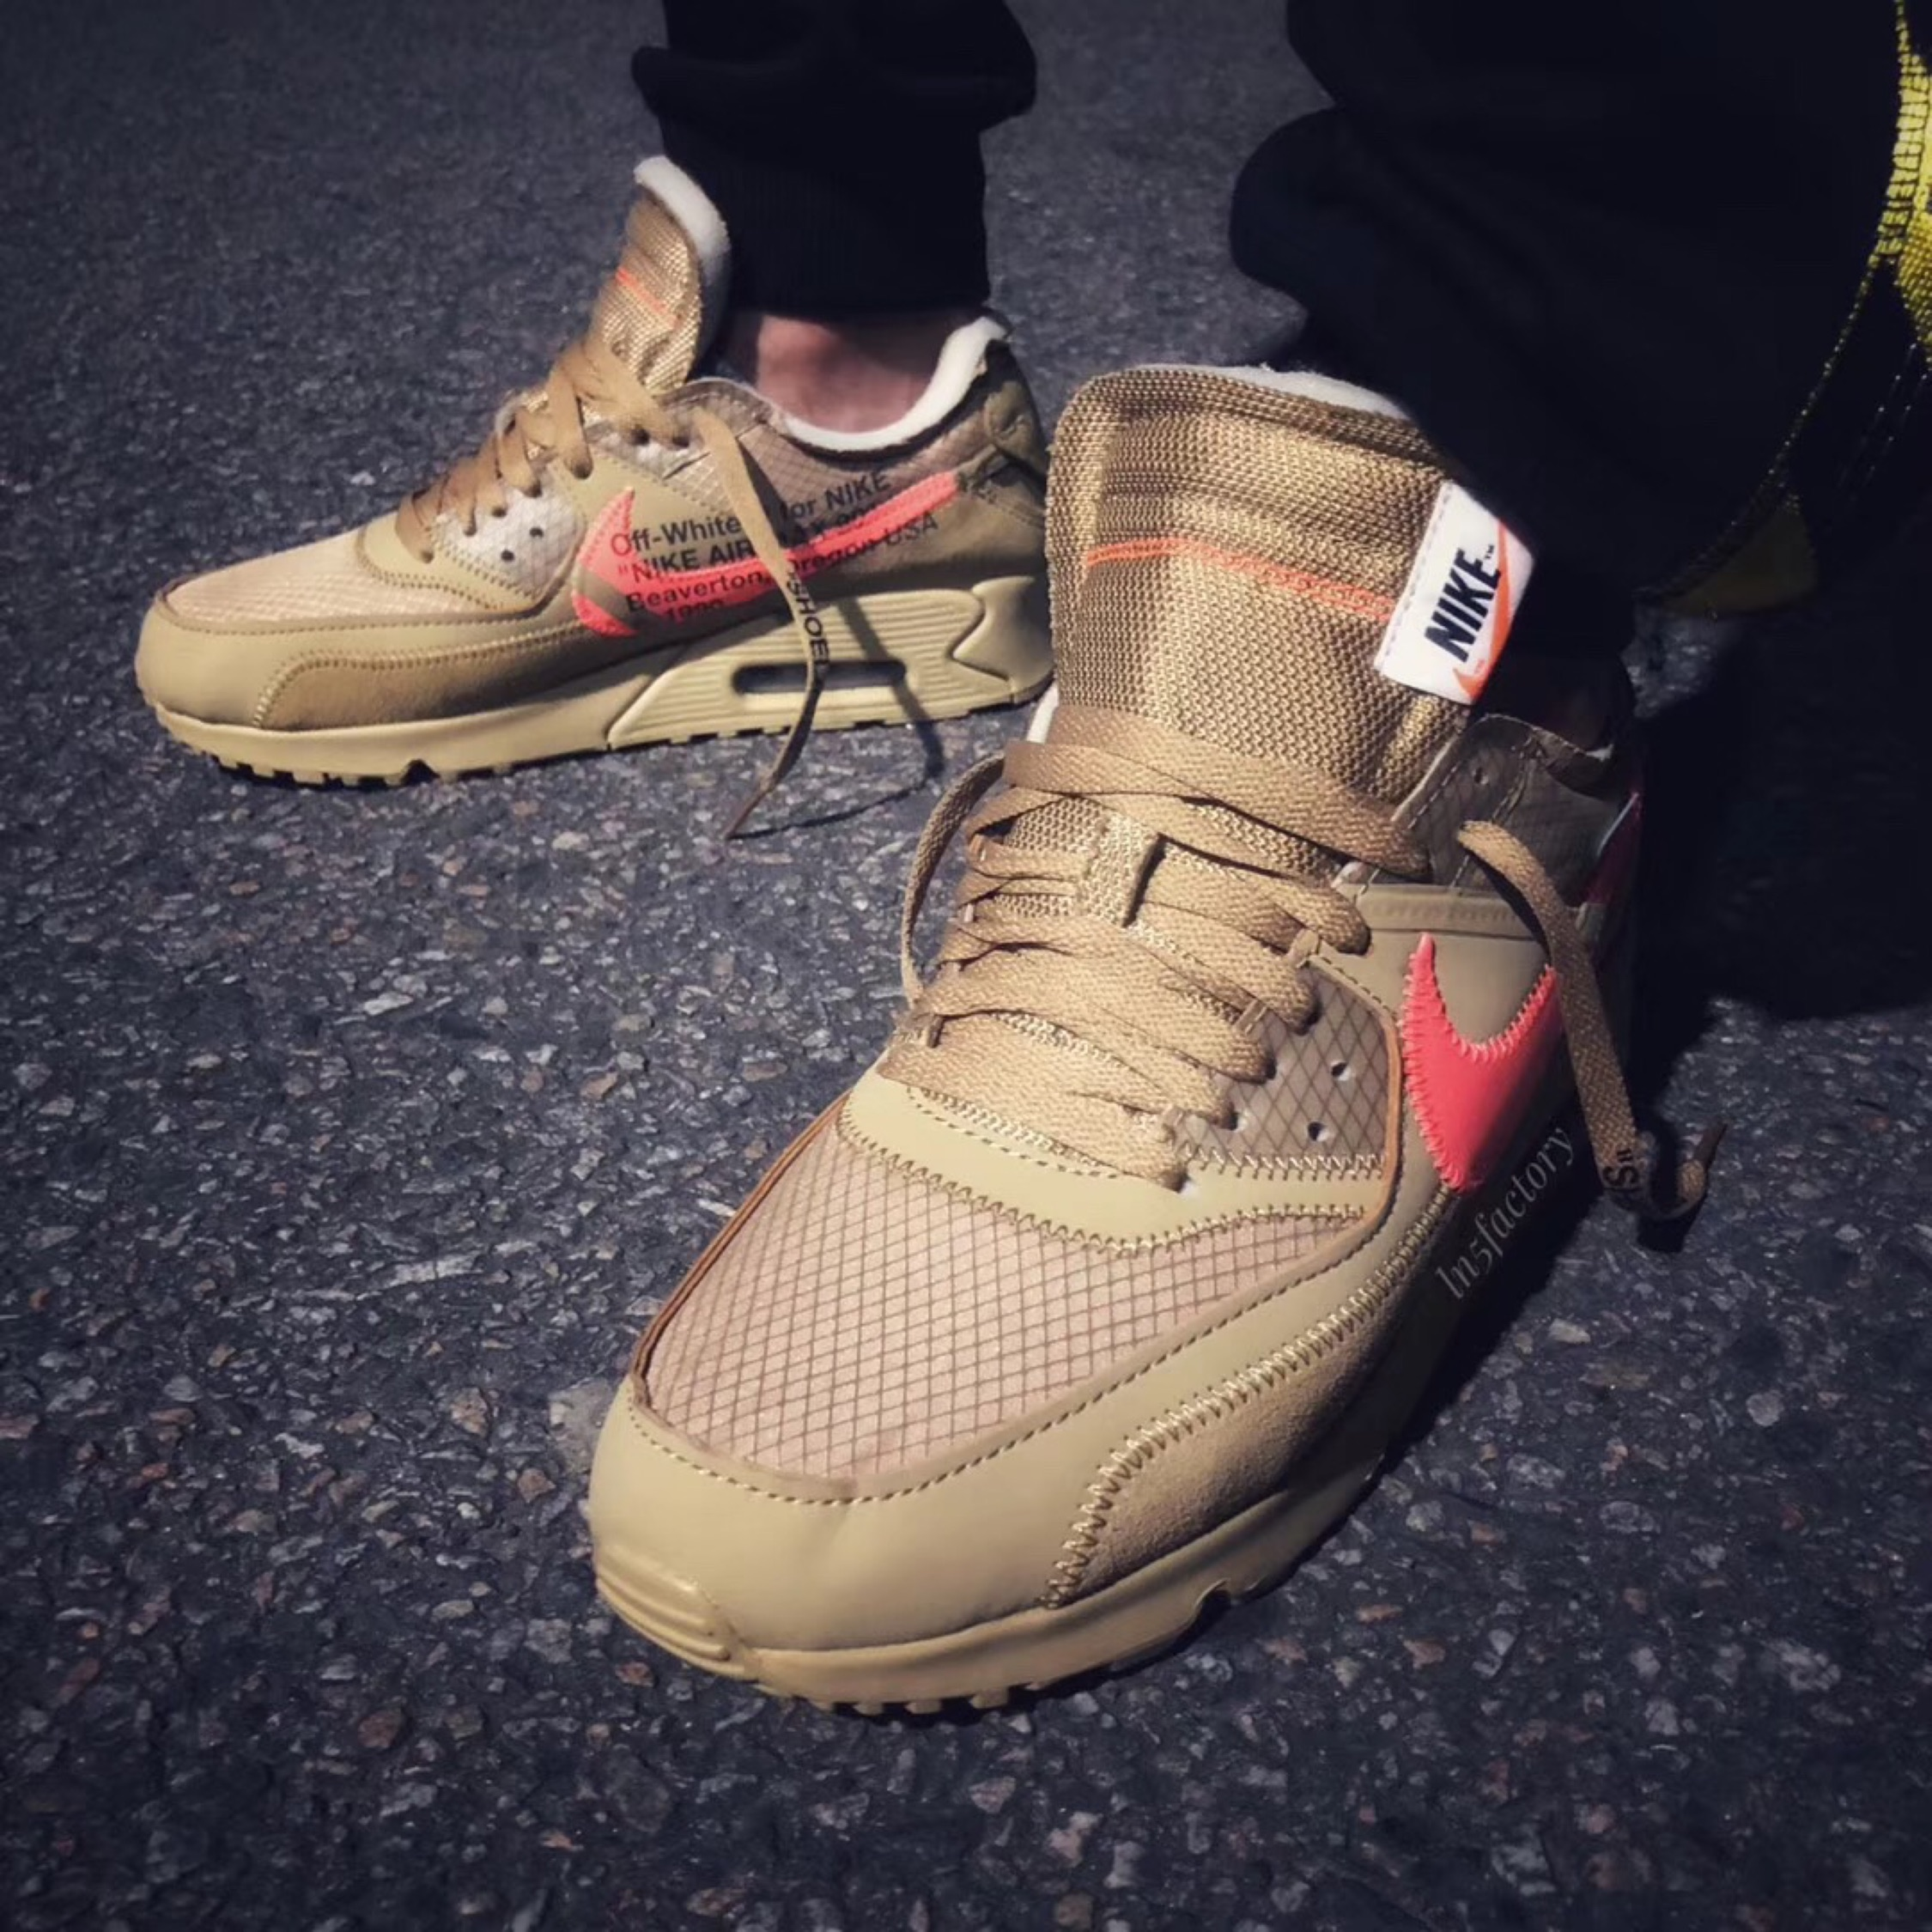 separation shoes bfb4a cba89 Off White X Nike Air Max 90 Desert Ore